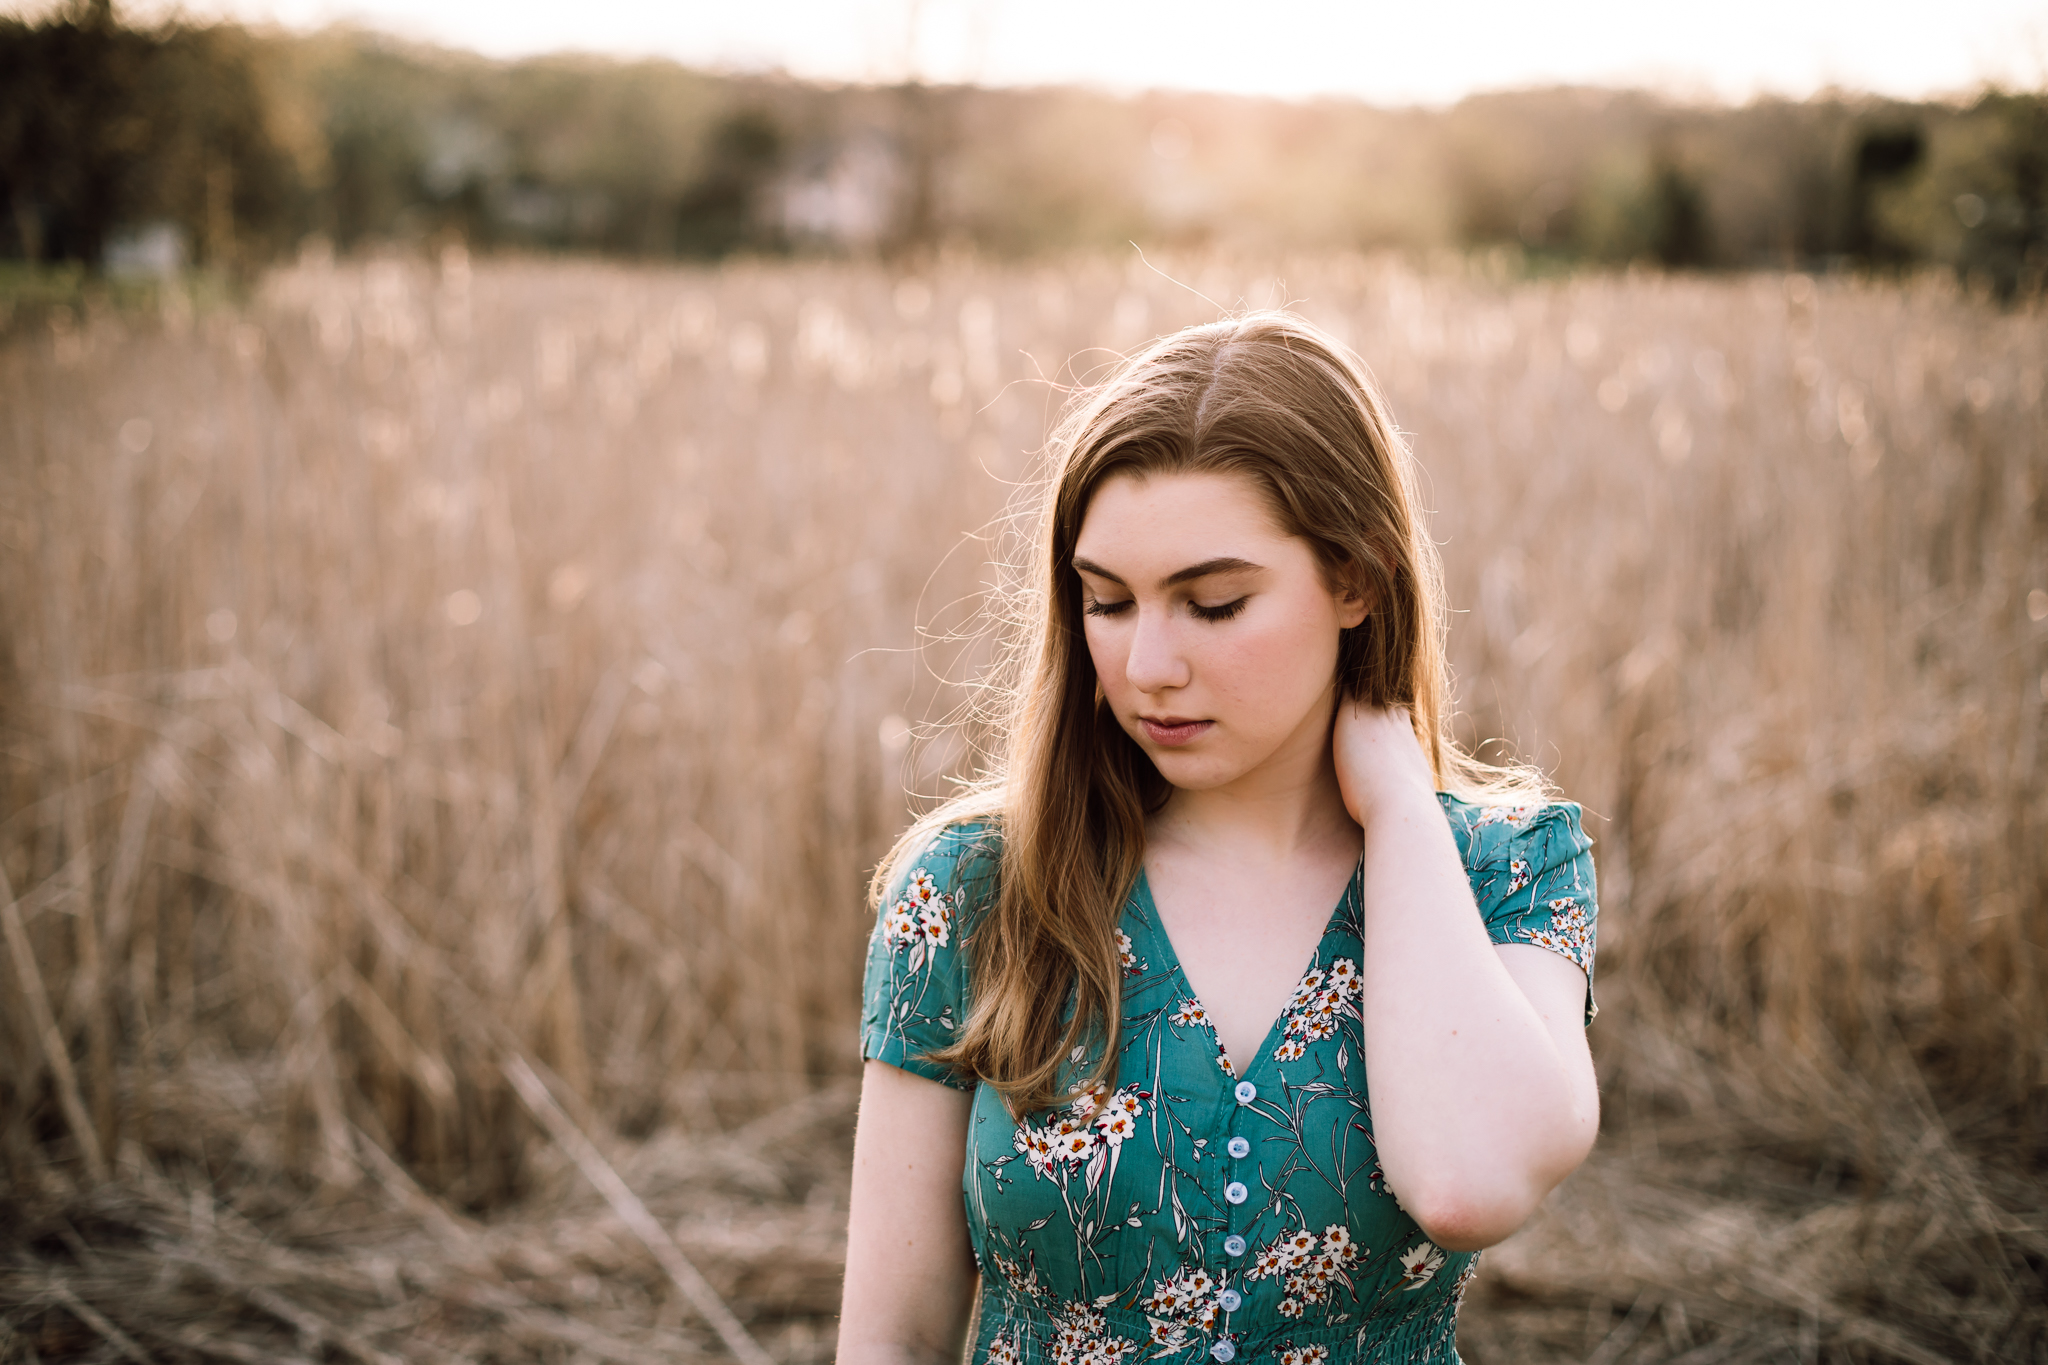 girl in blue dress with flowers standing in a field at sunset - AMG Photography